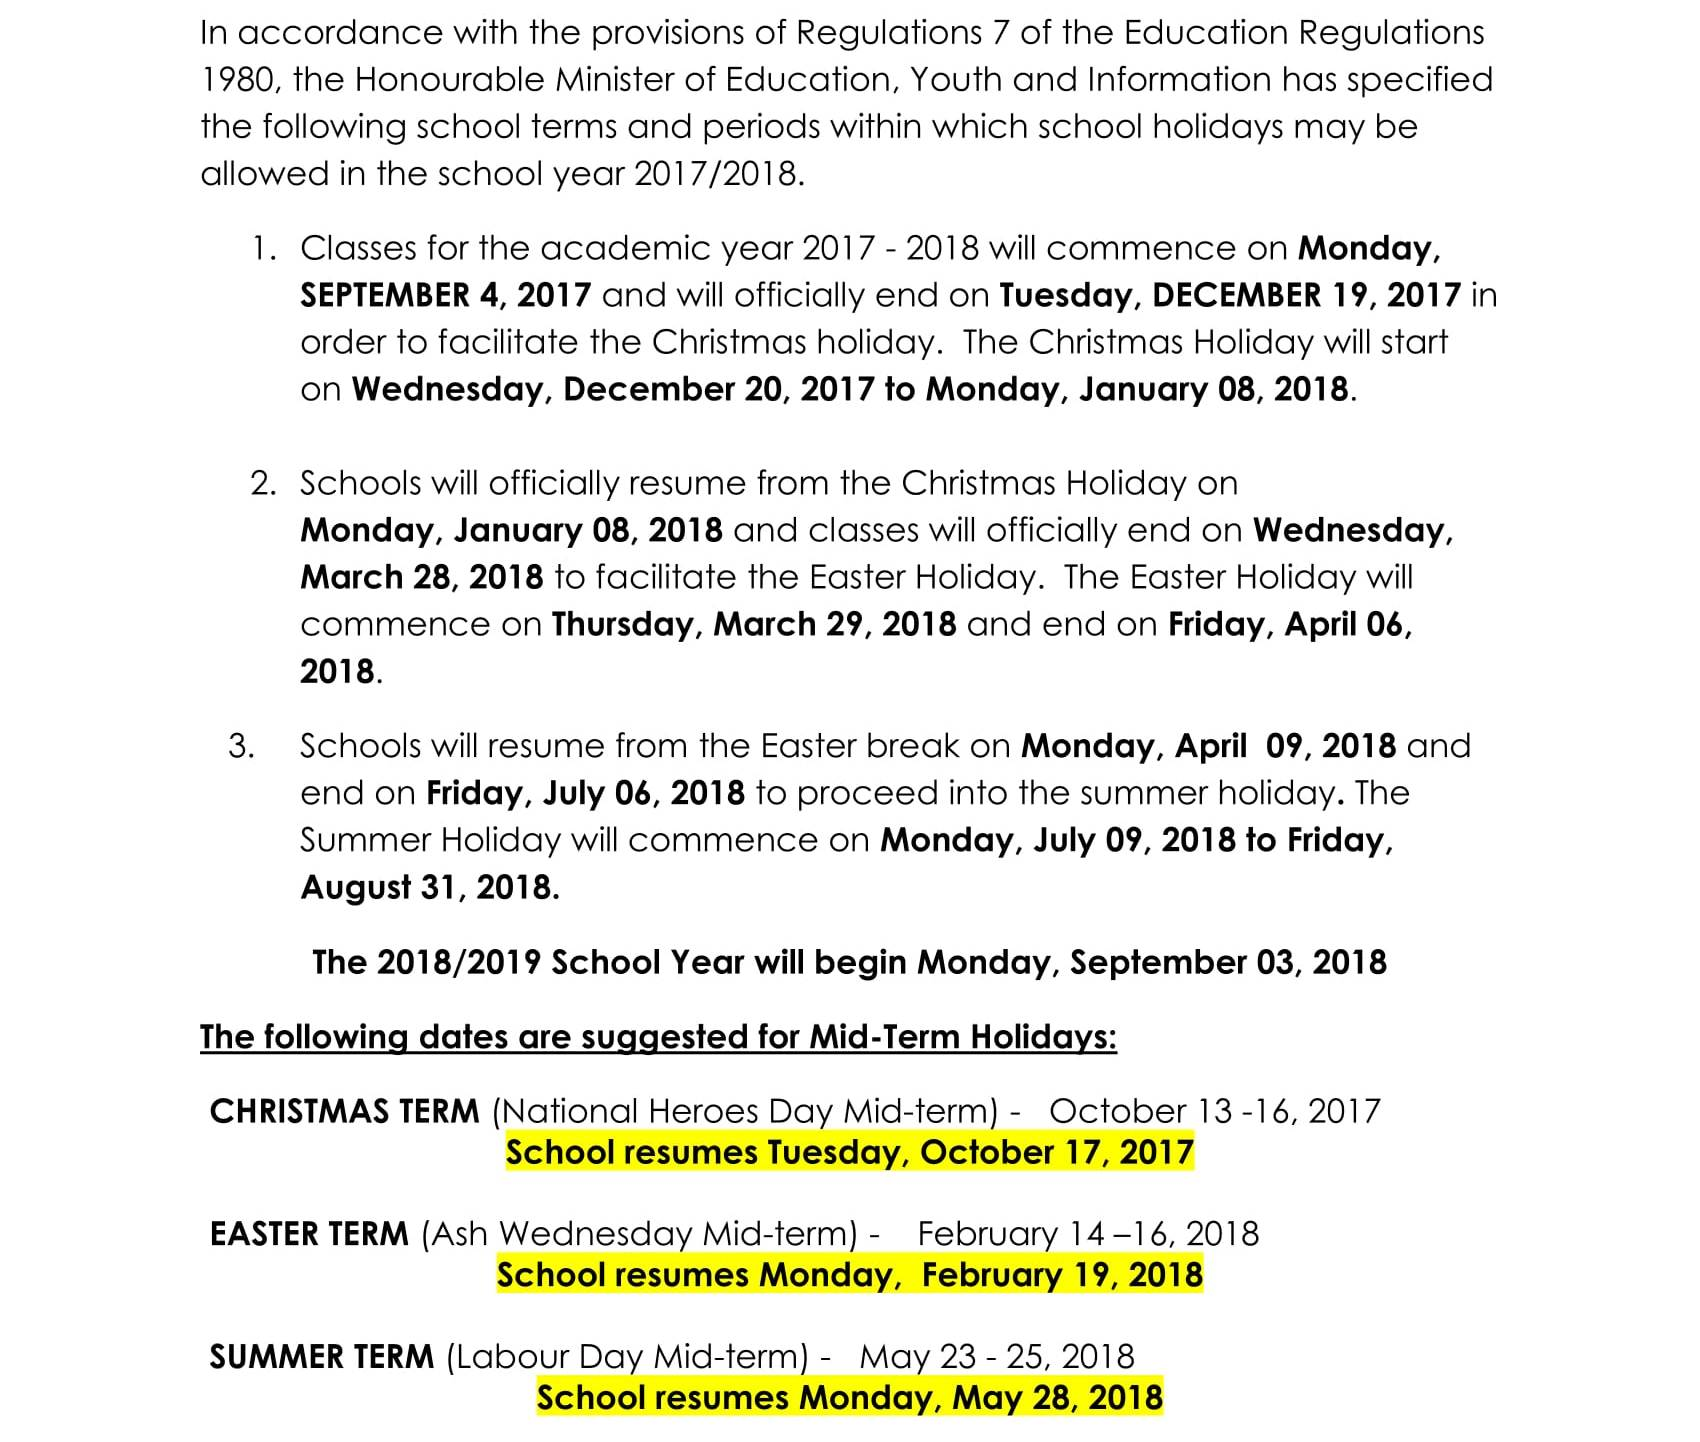 calendar of school terms and holidays for the academic year 2017 to 2018 it details the opening and closing dates for jamaican schools